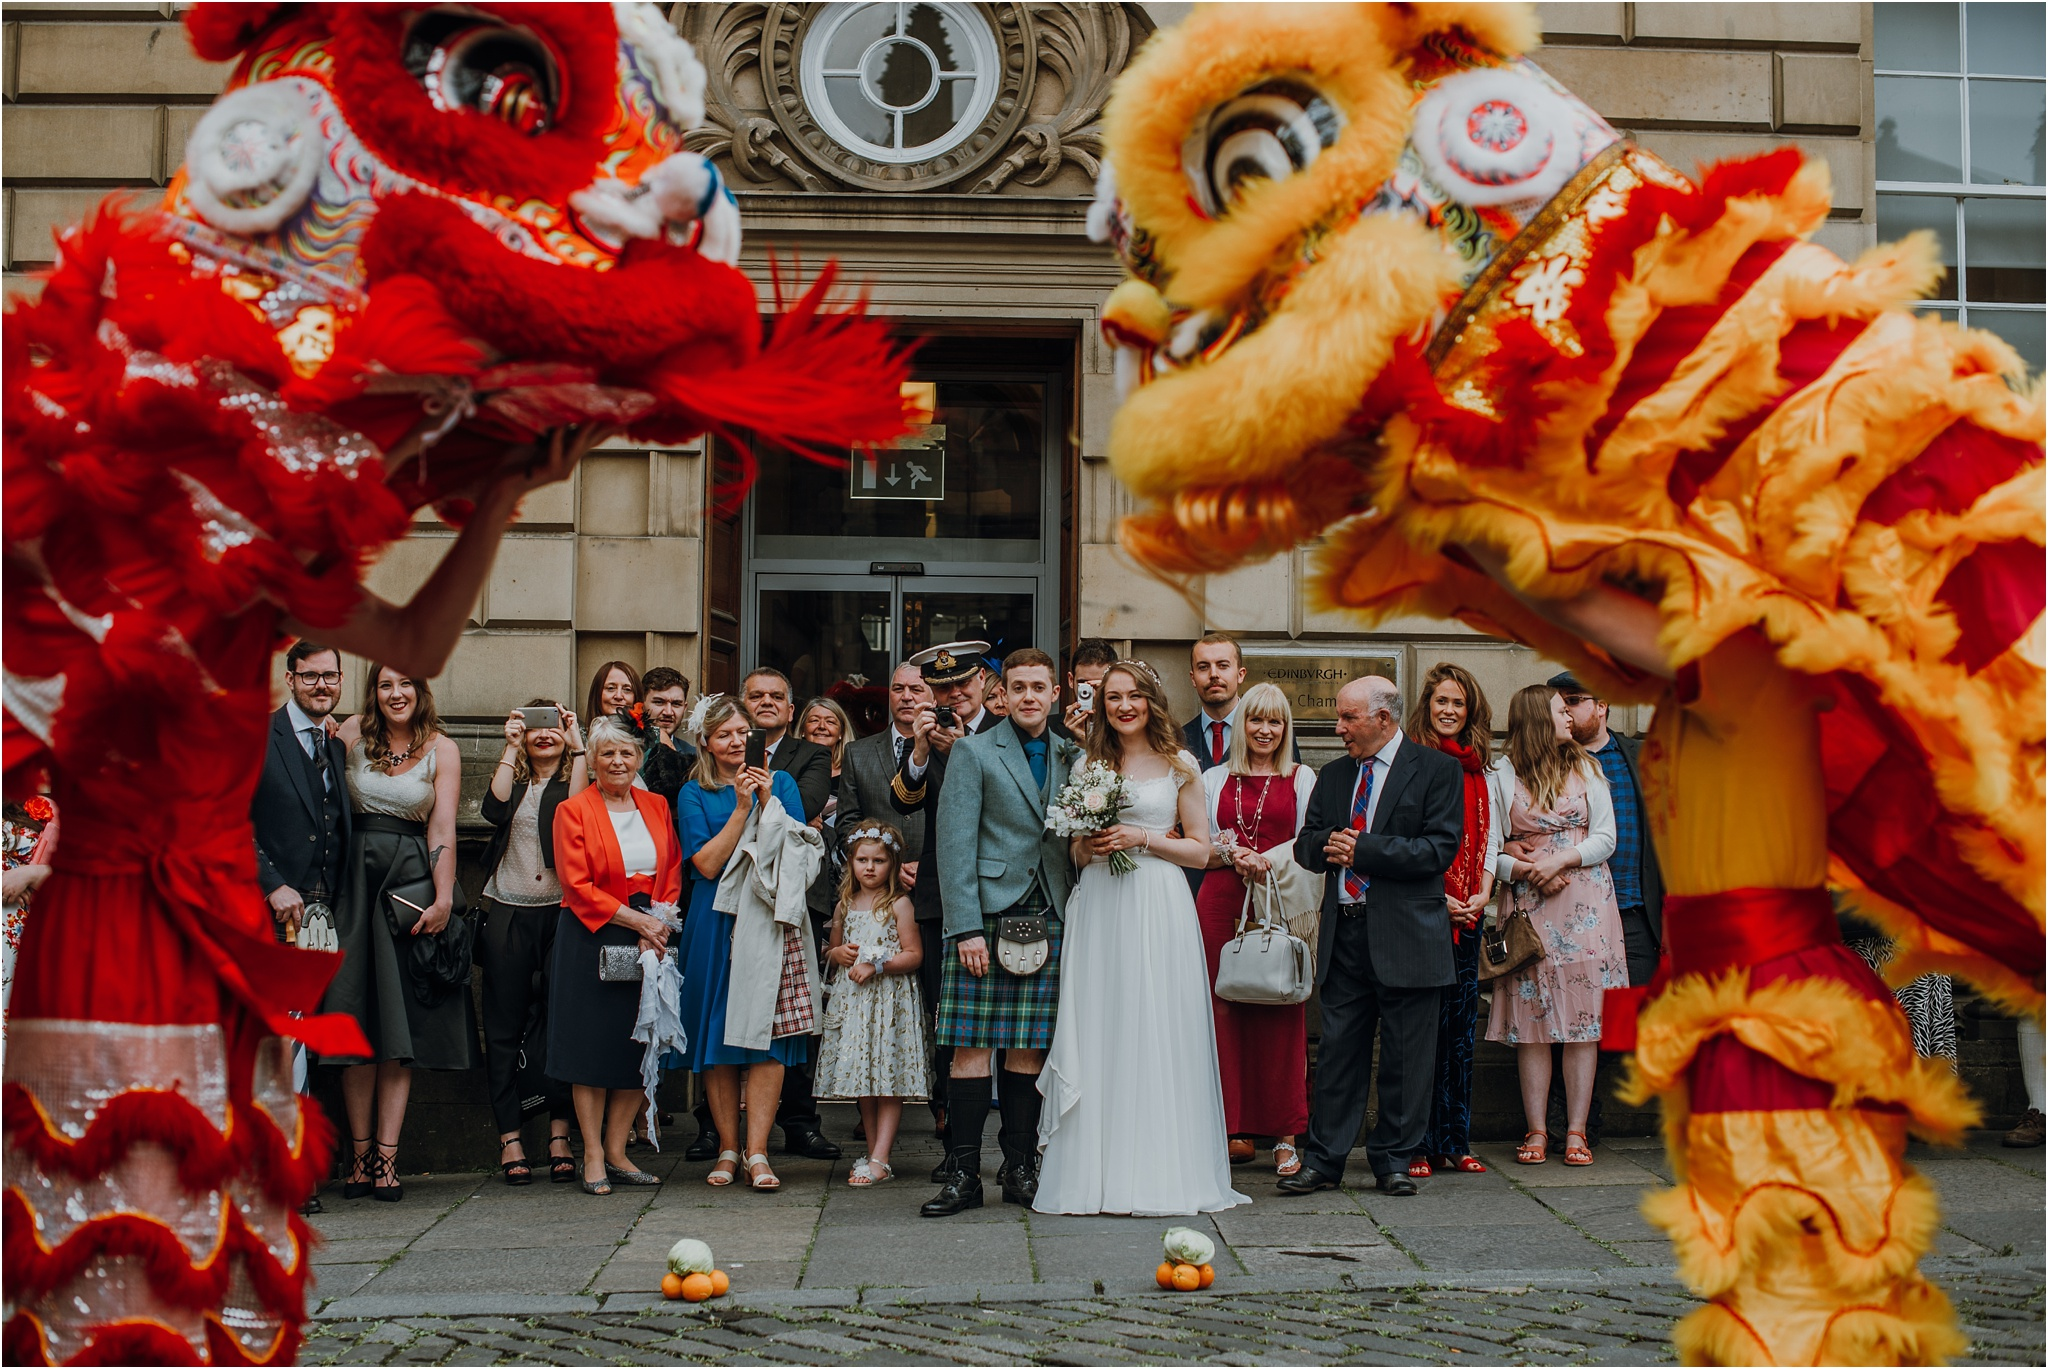 Edinburgh-wedding-photographer_18.jpg